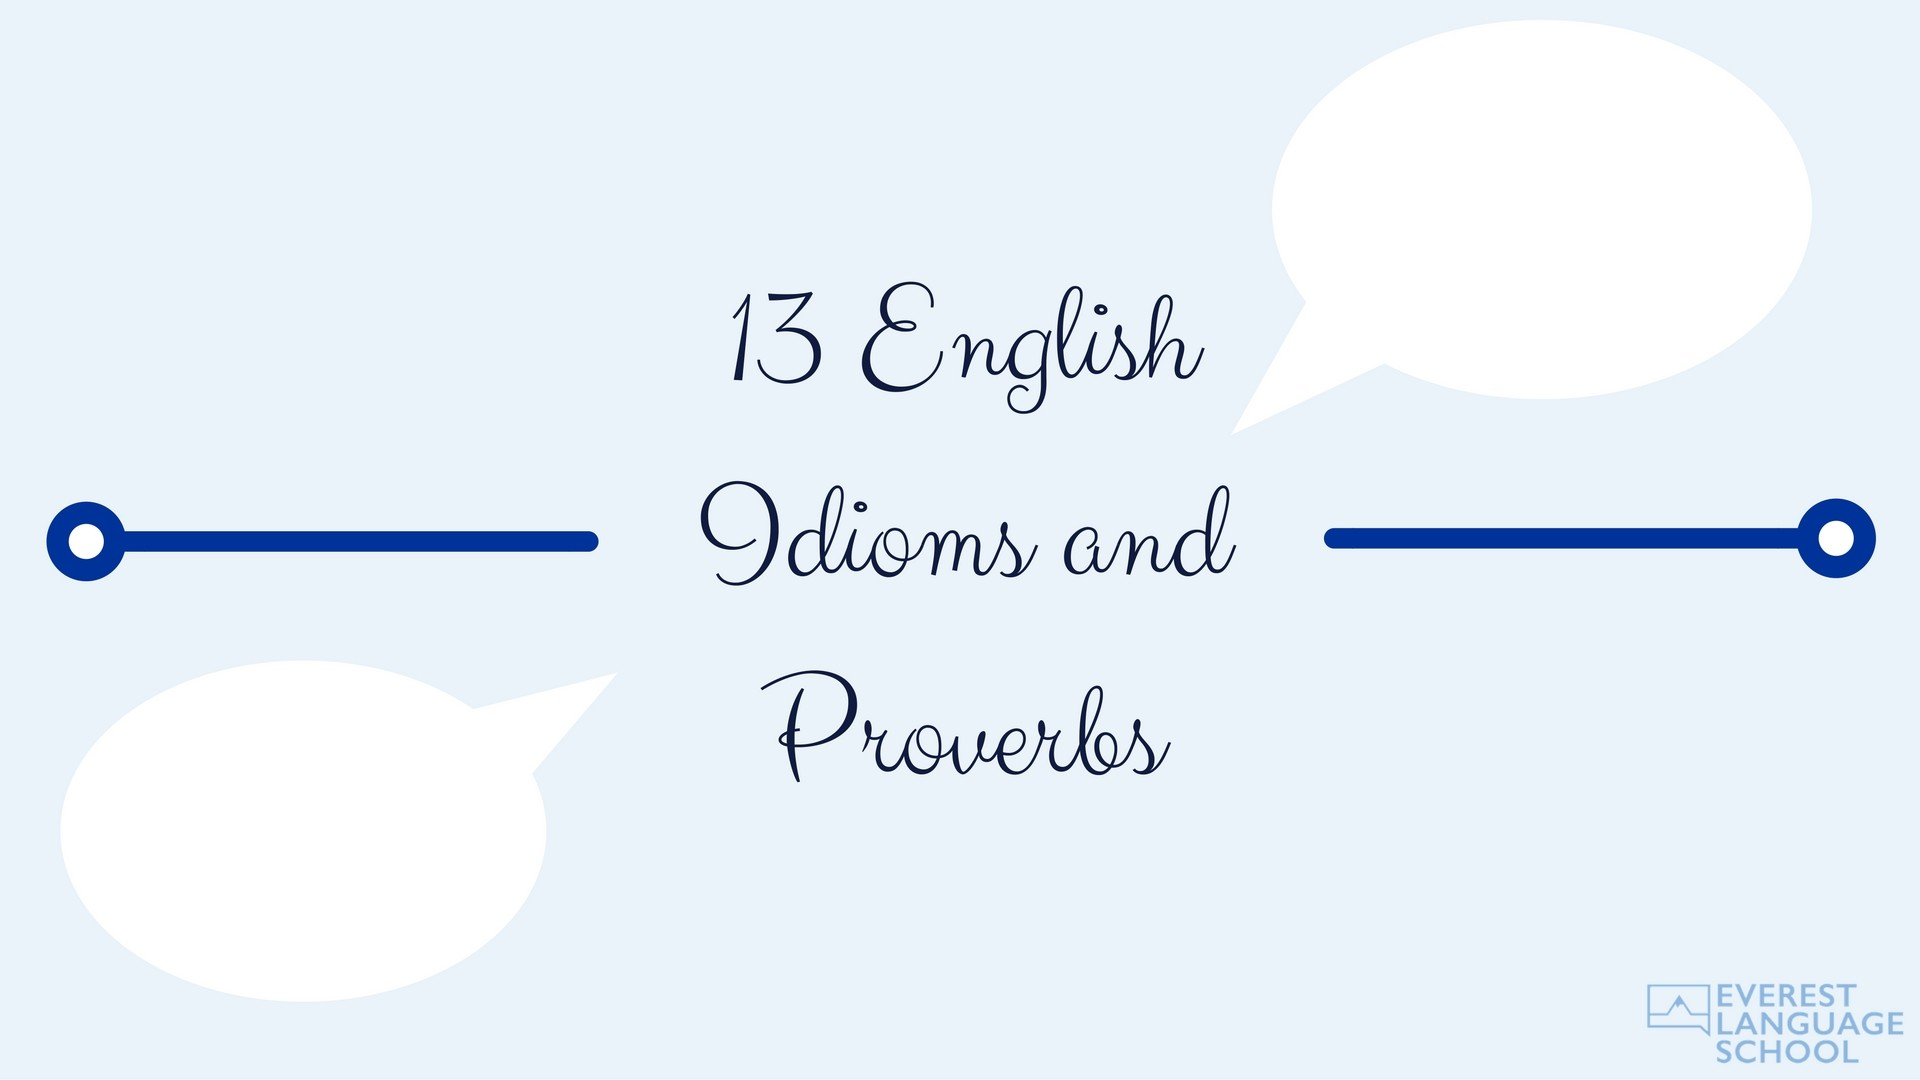 13 English Idioms and Proverbs - Everest Language School